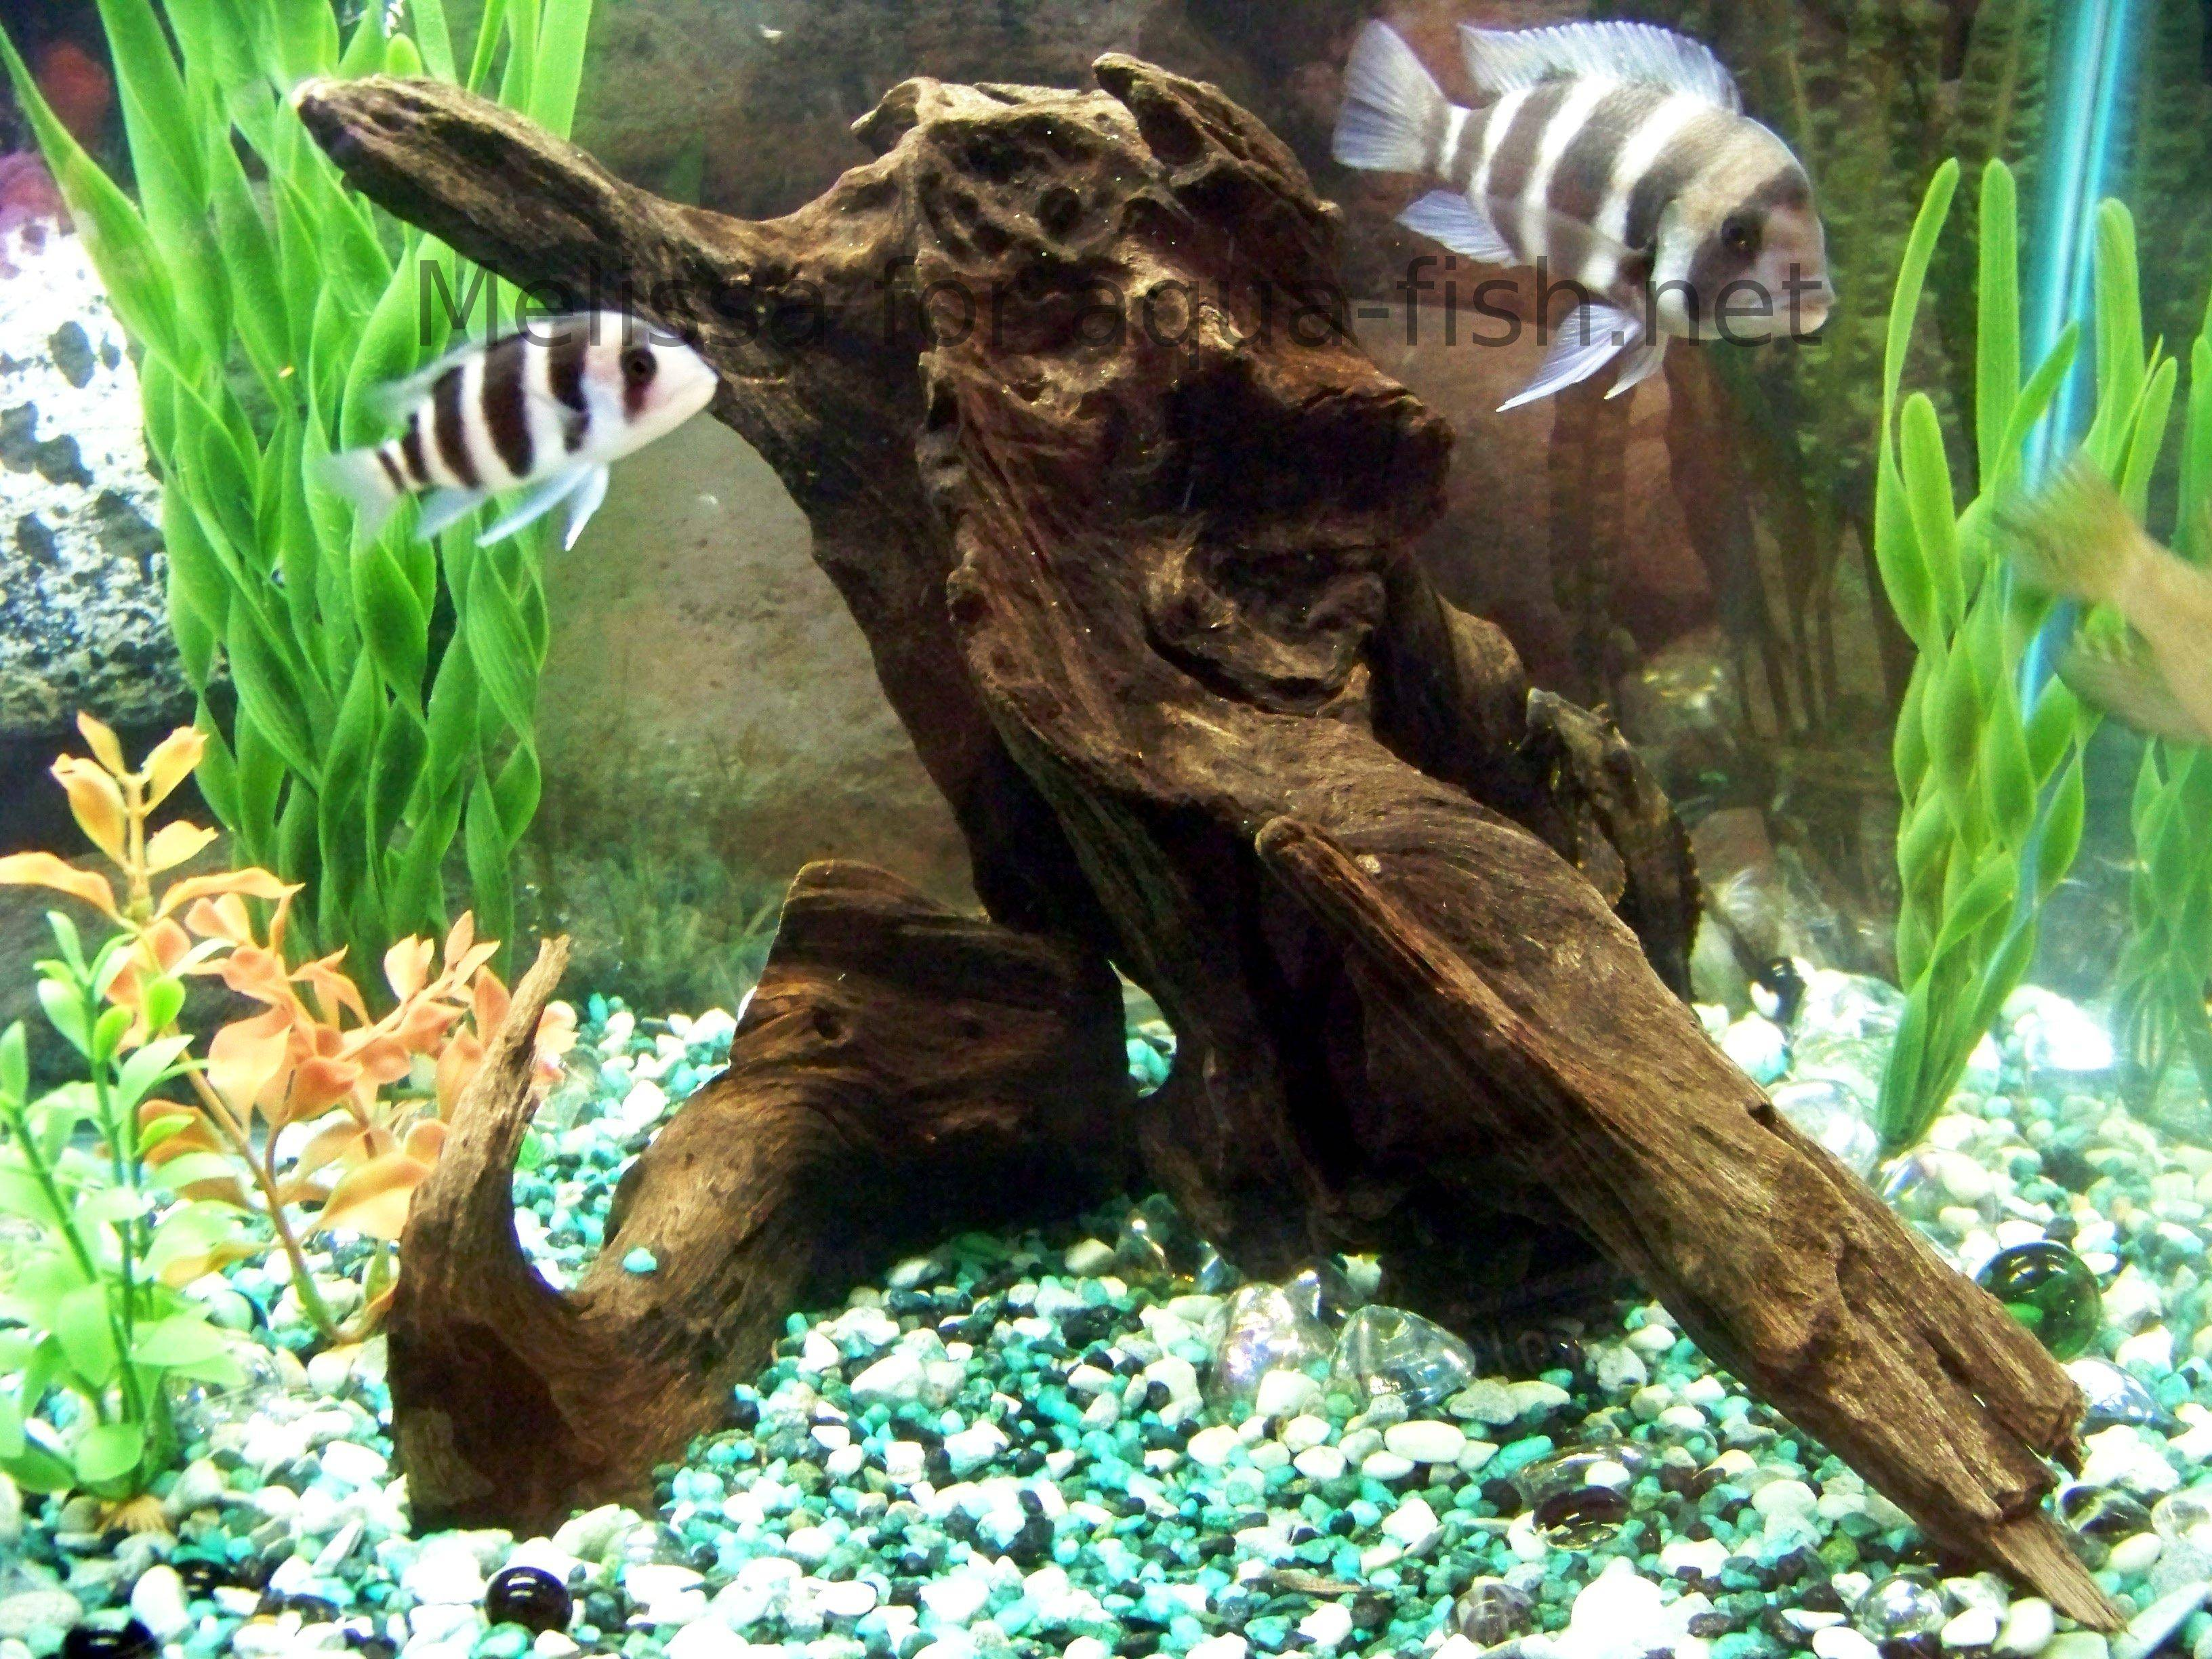 Fish tank wood - Aquarium Wood 1 Aquarium Wood 2